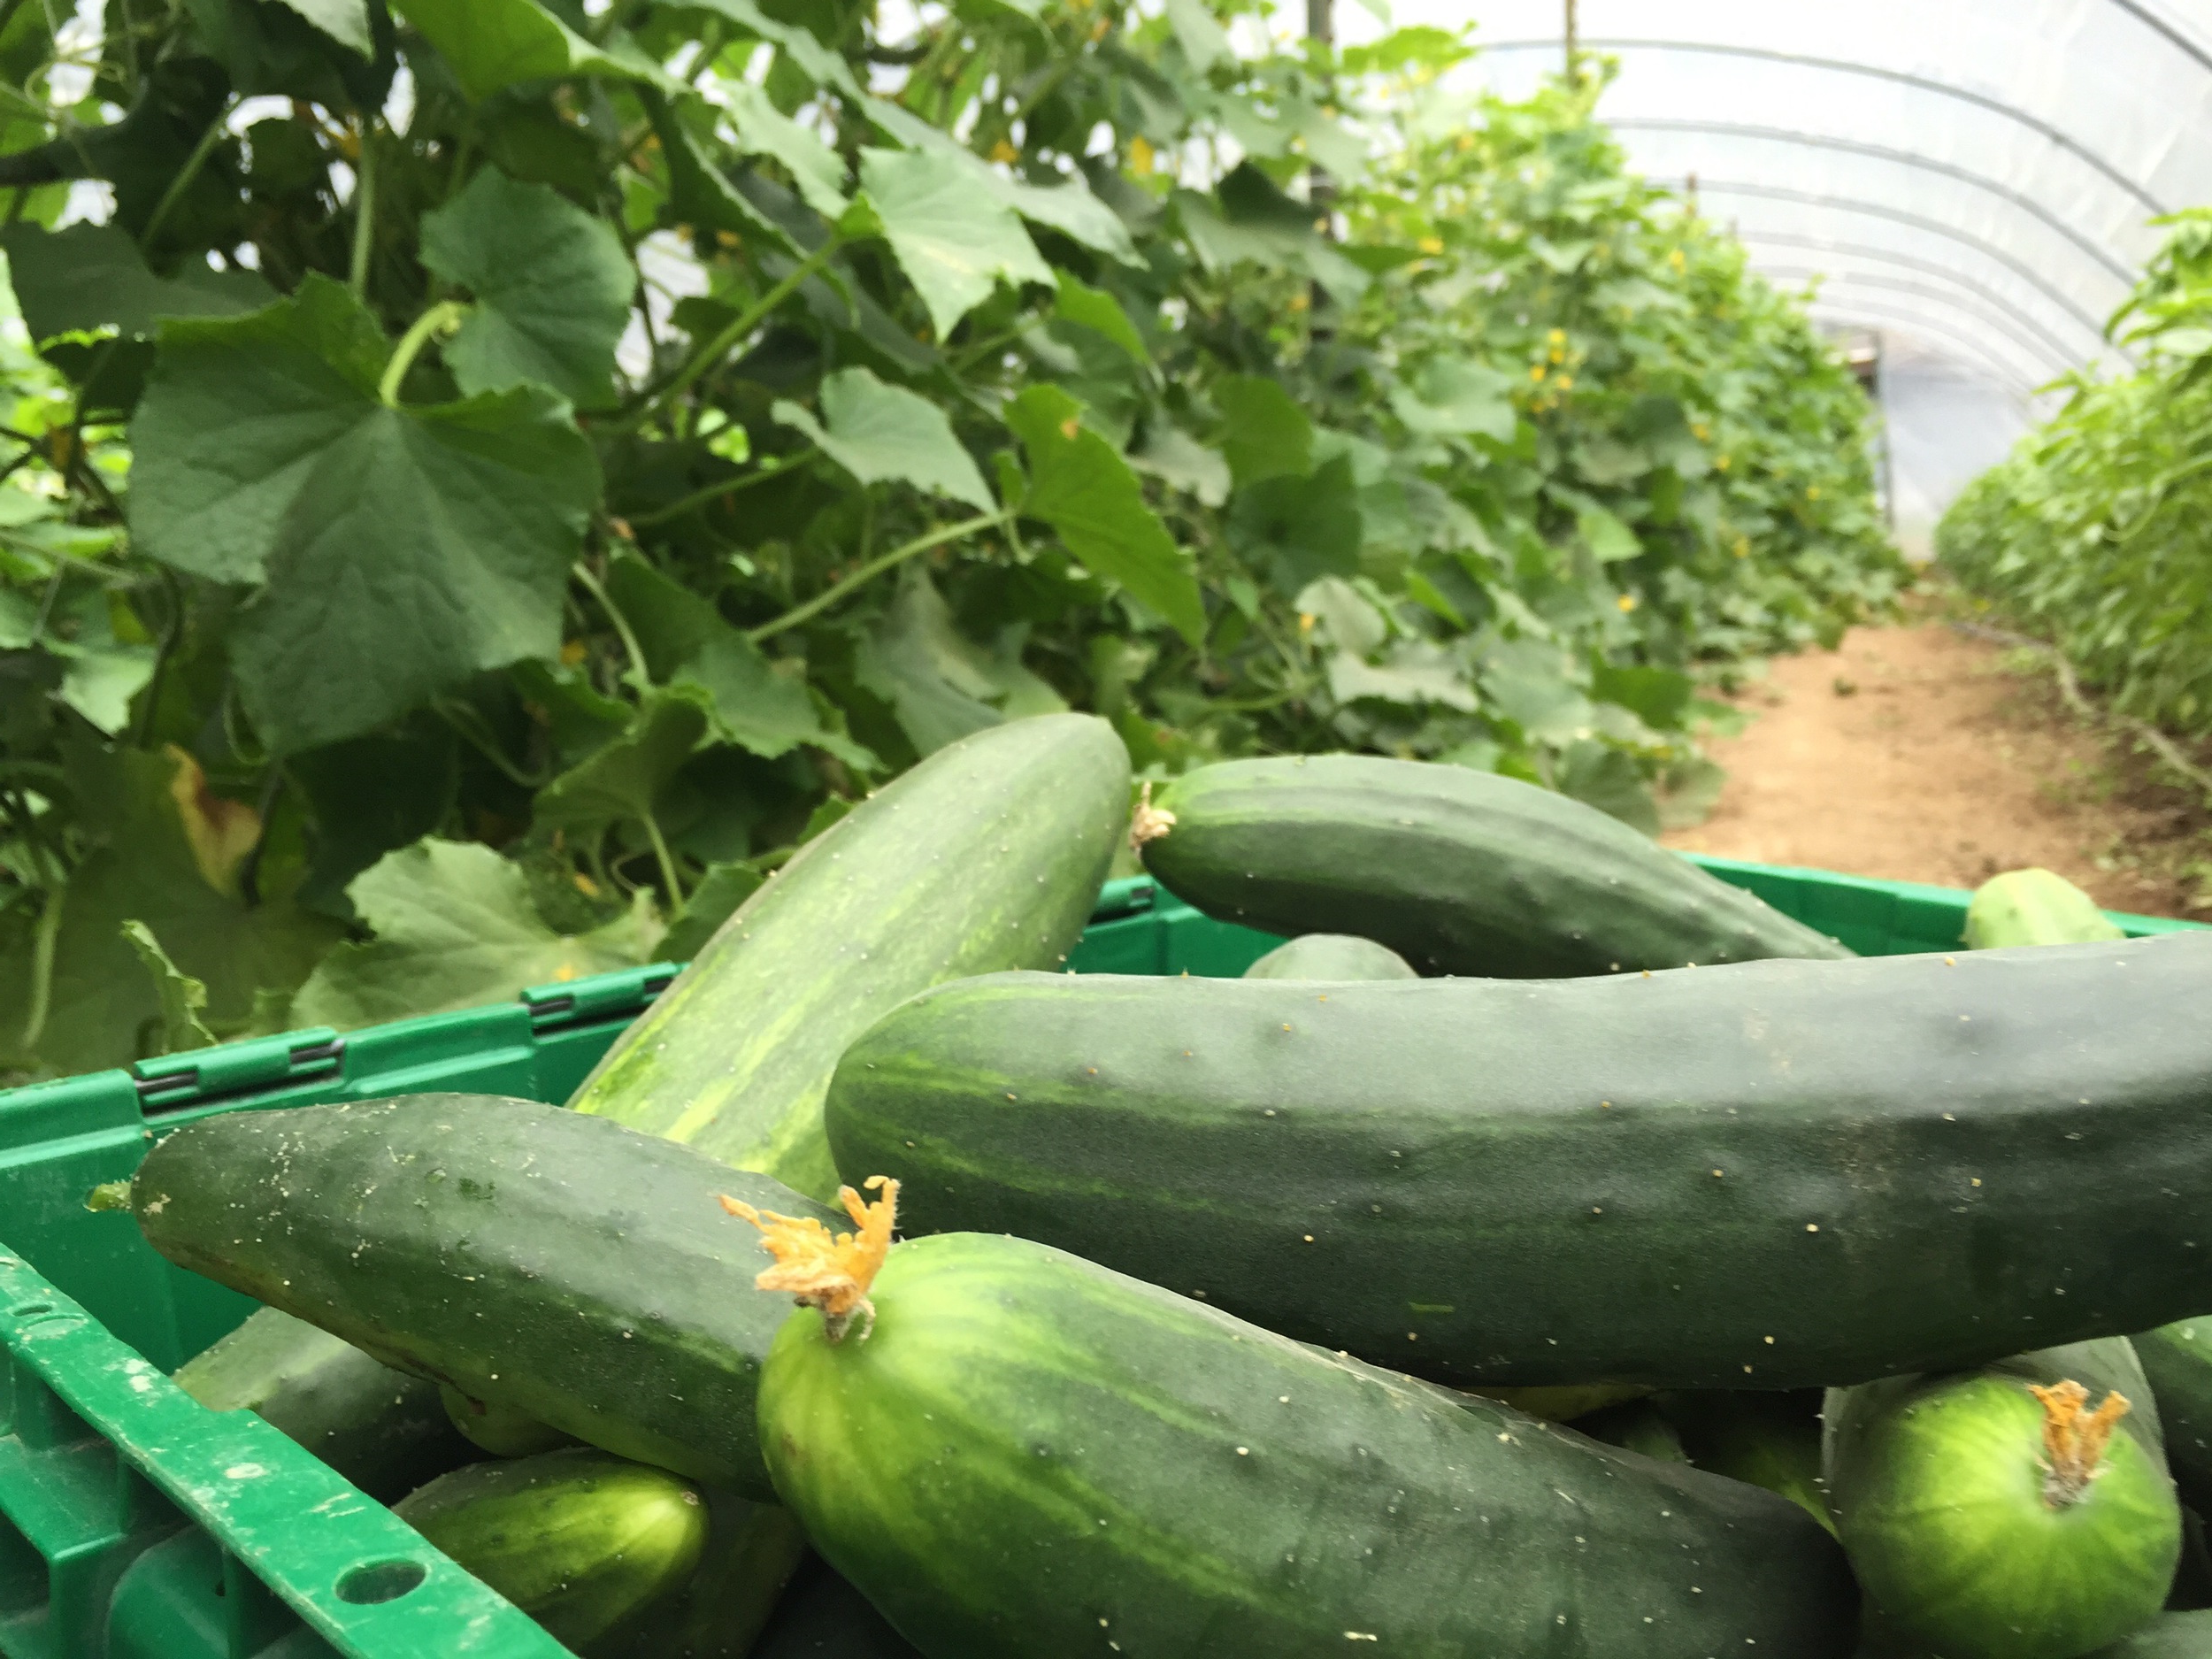 Farm photo collecting cucumbers in a hoop-house. An effort to show what goes into providing healthy food to community.